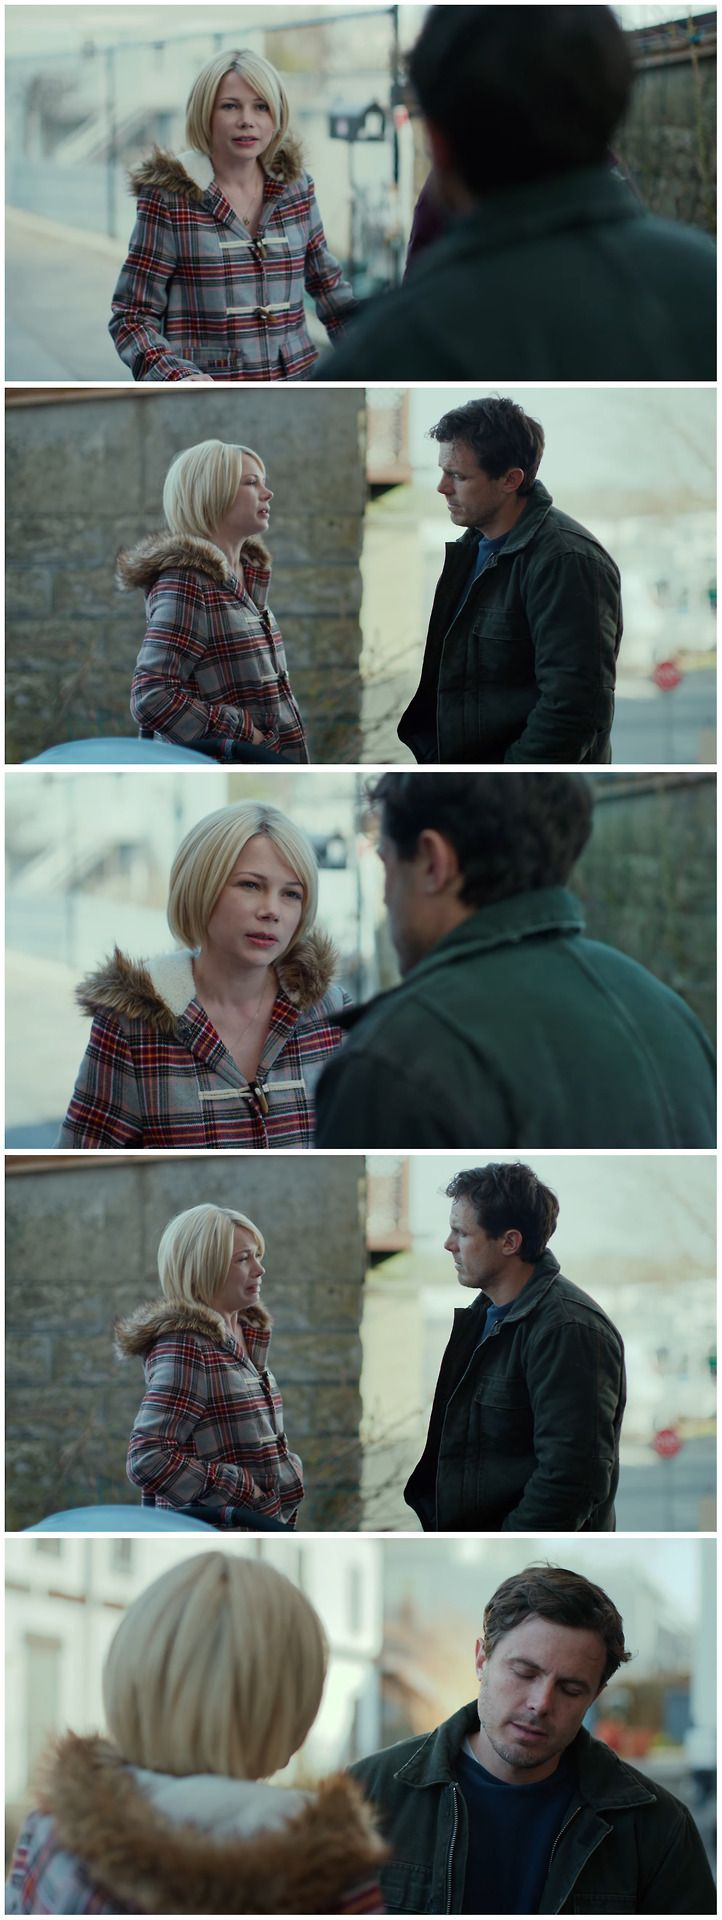 The Oscars 2017 | 89th Academy AwardsOriginal screenplay: Kenneth Lonergan - Manchester by the Sea